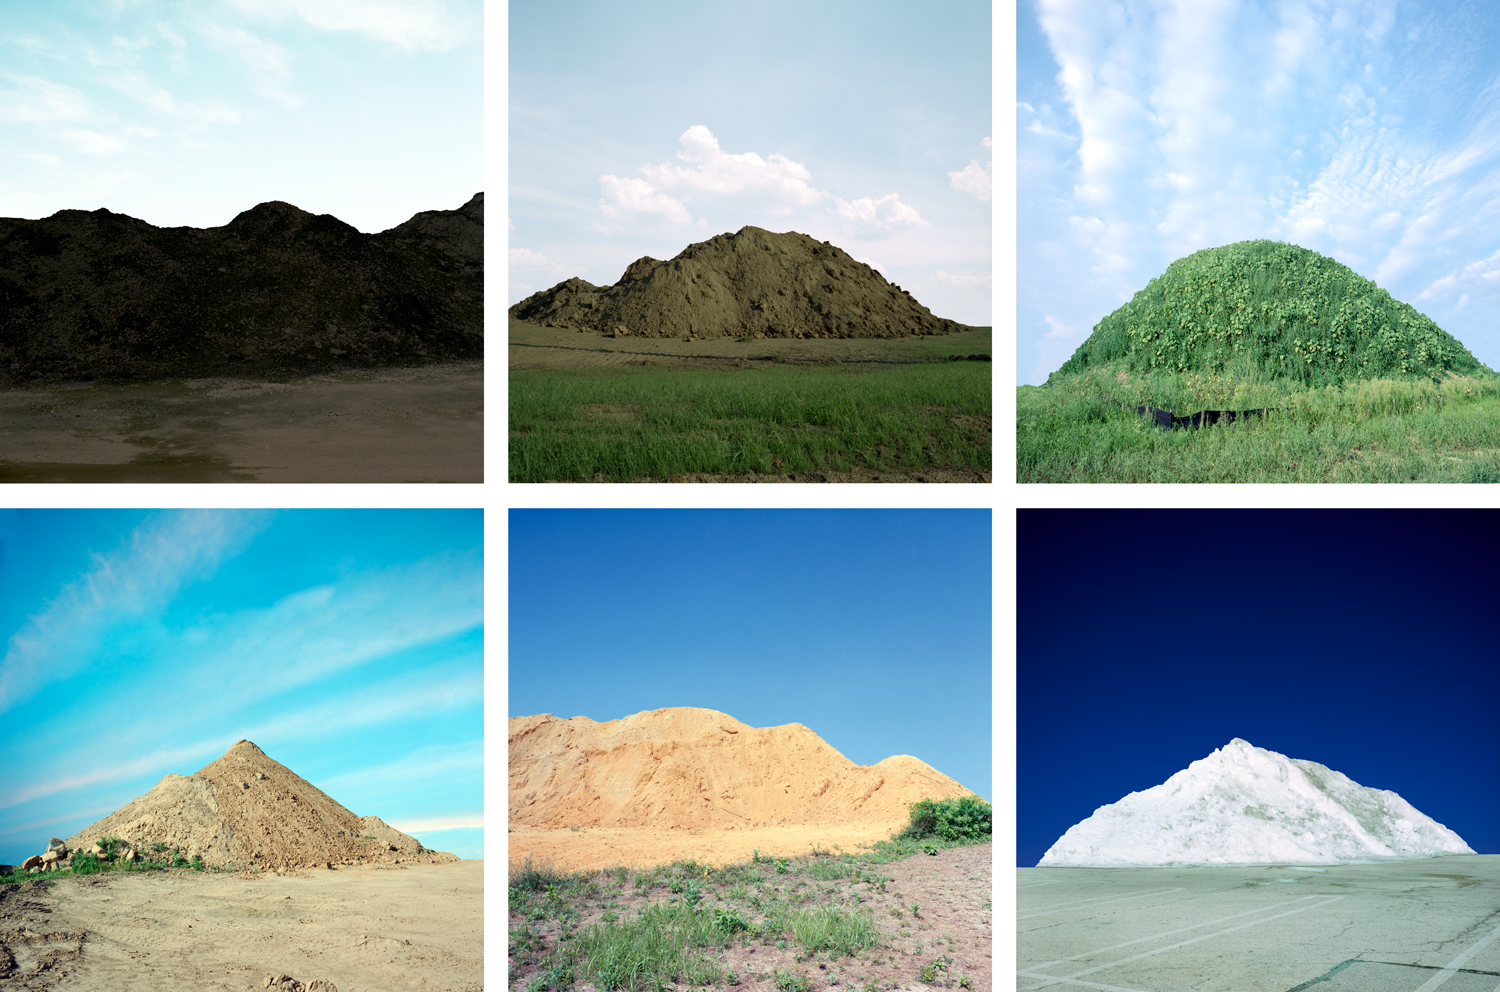 Mounds, 2010, archival pigment print on paper